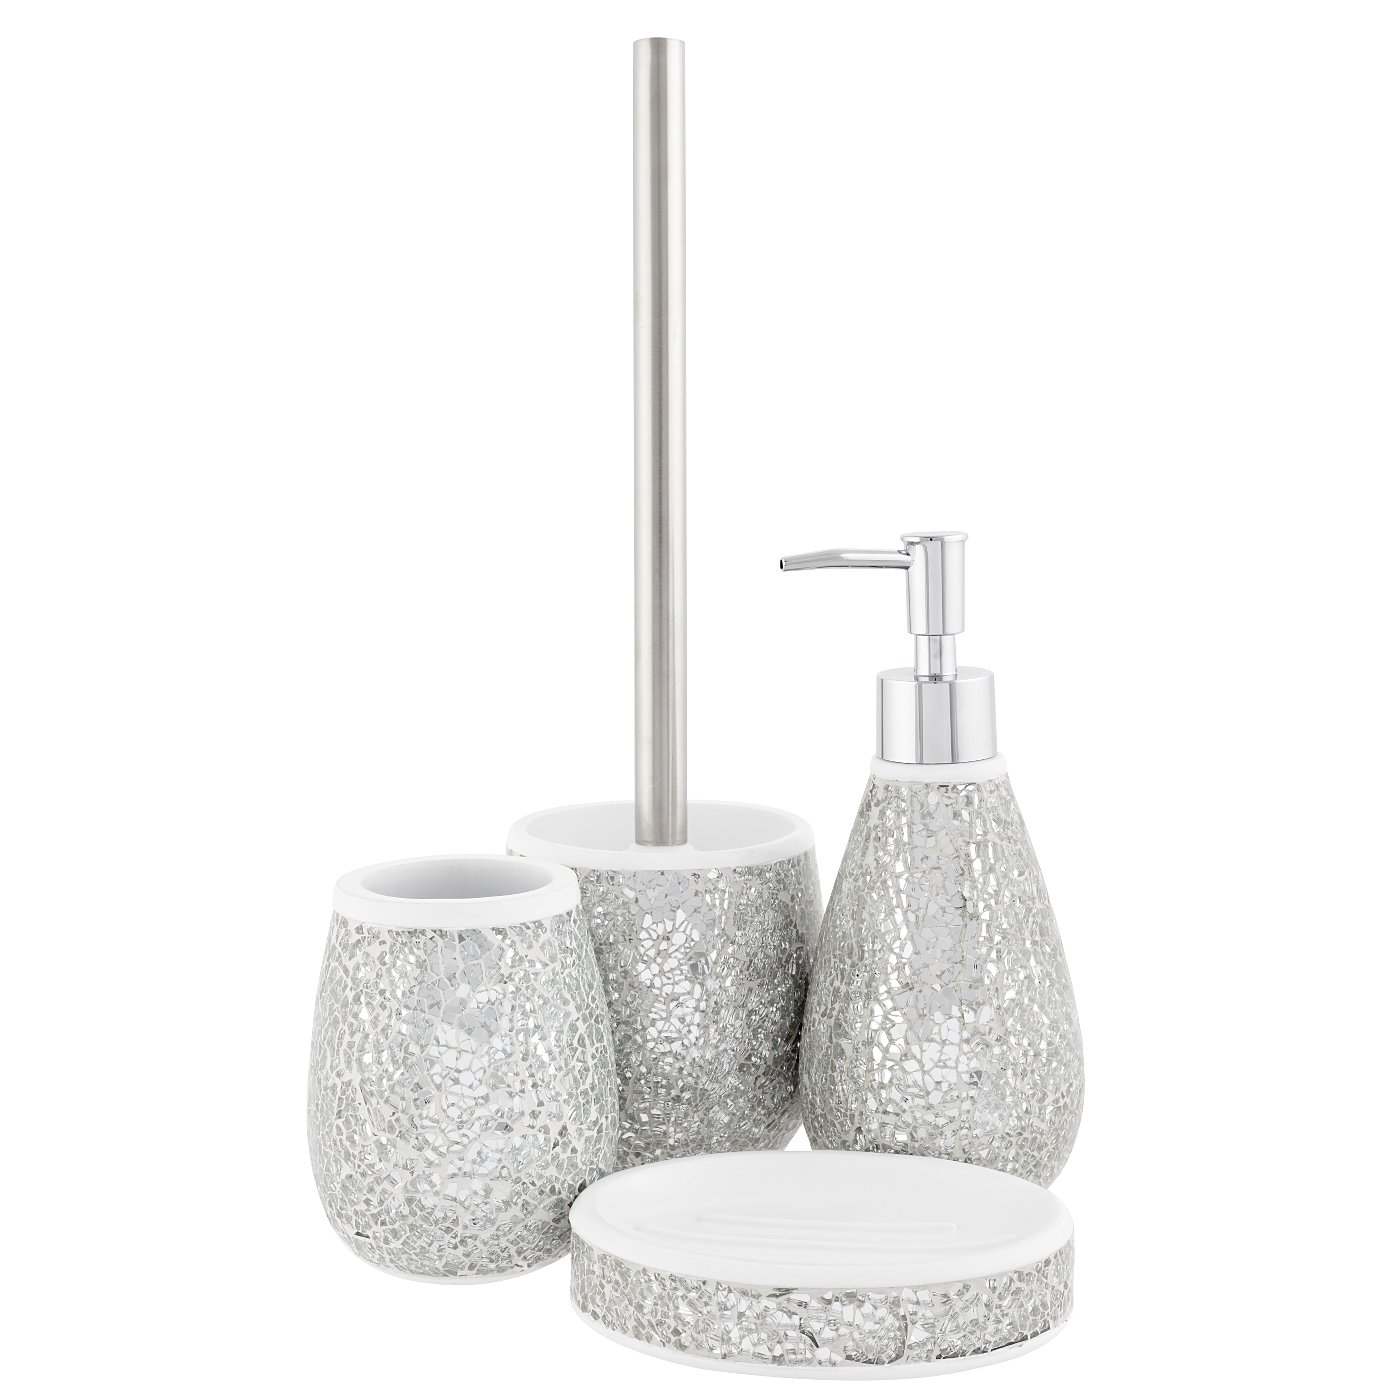 crackle bathroom accessories. Cracked Silver Glass Bath Accessories Range  Loading Zoom Bathroom